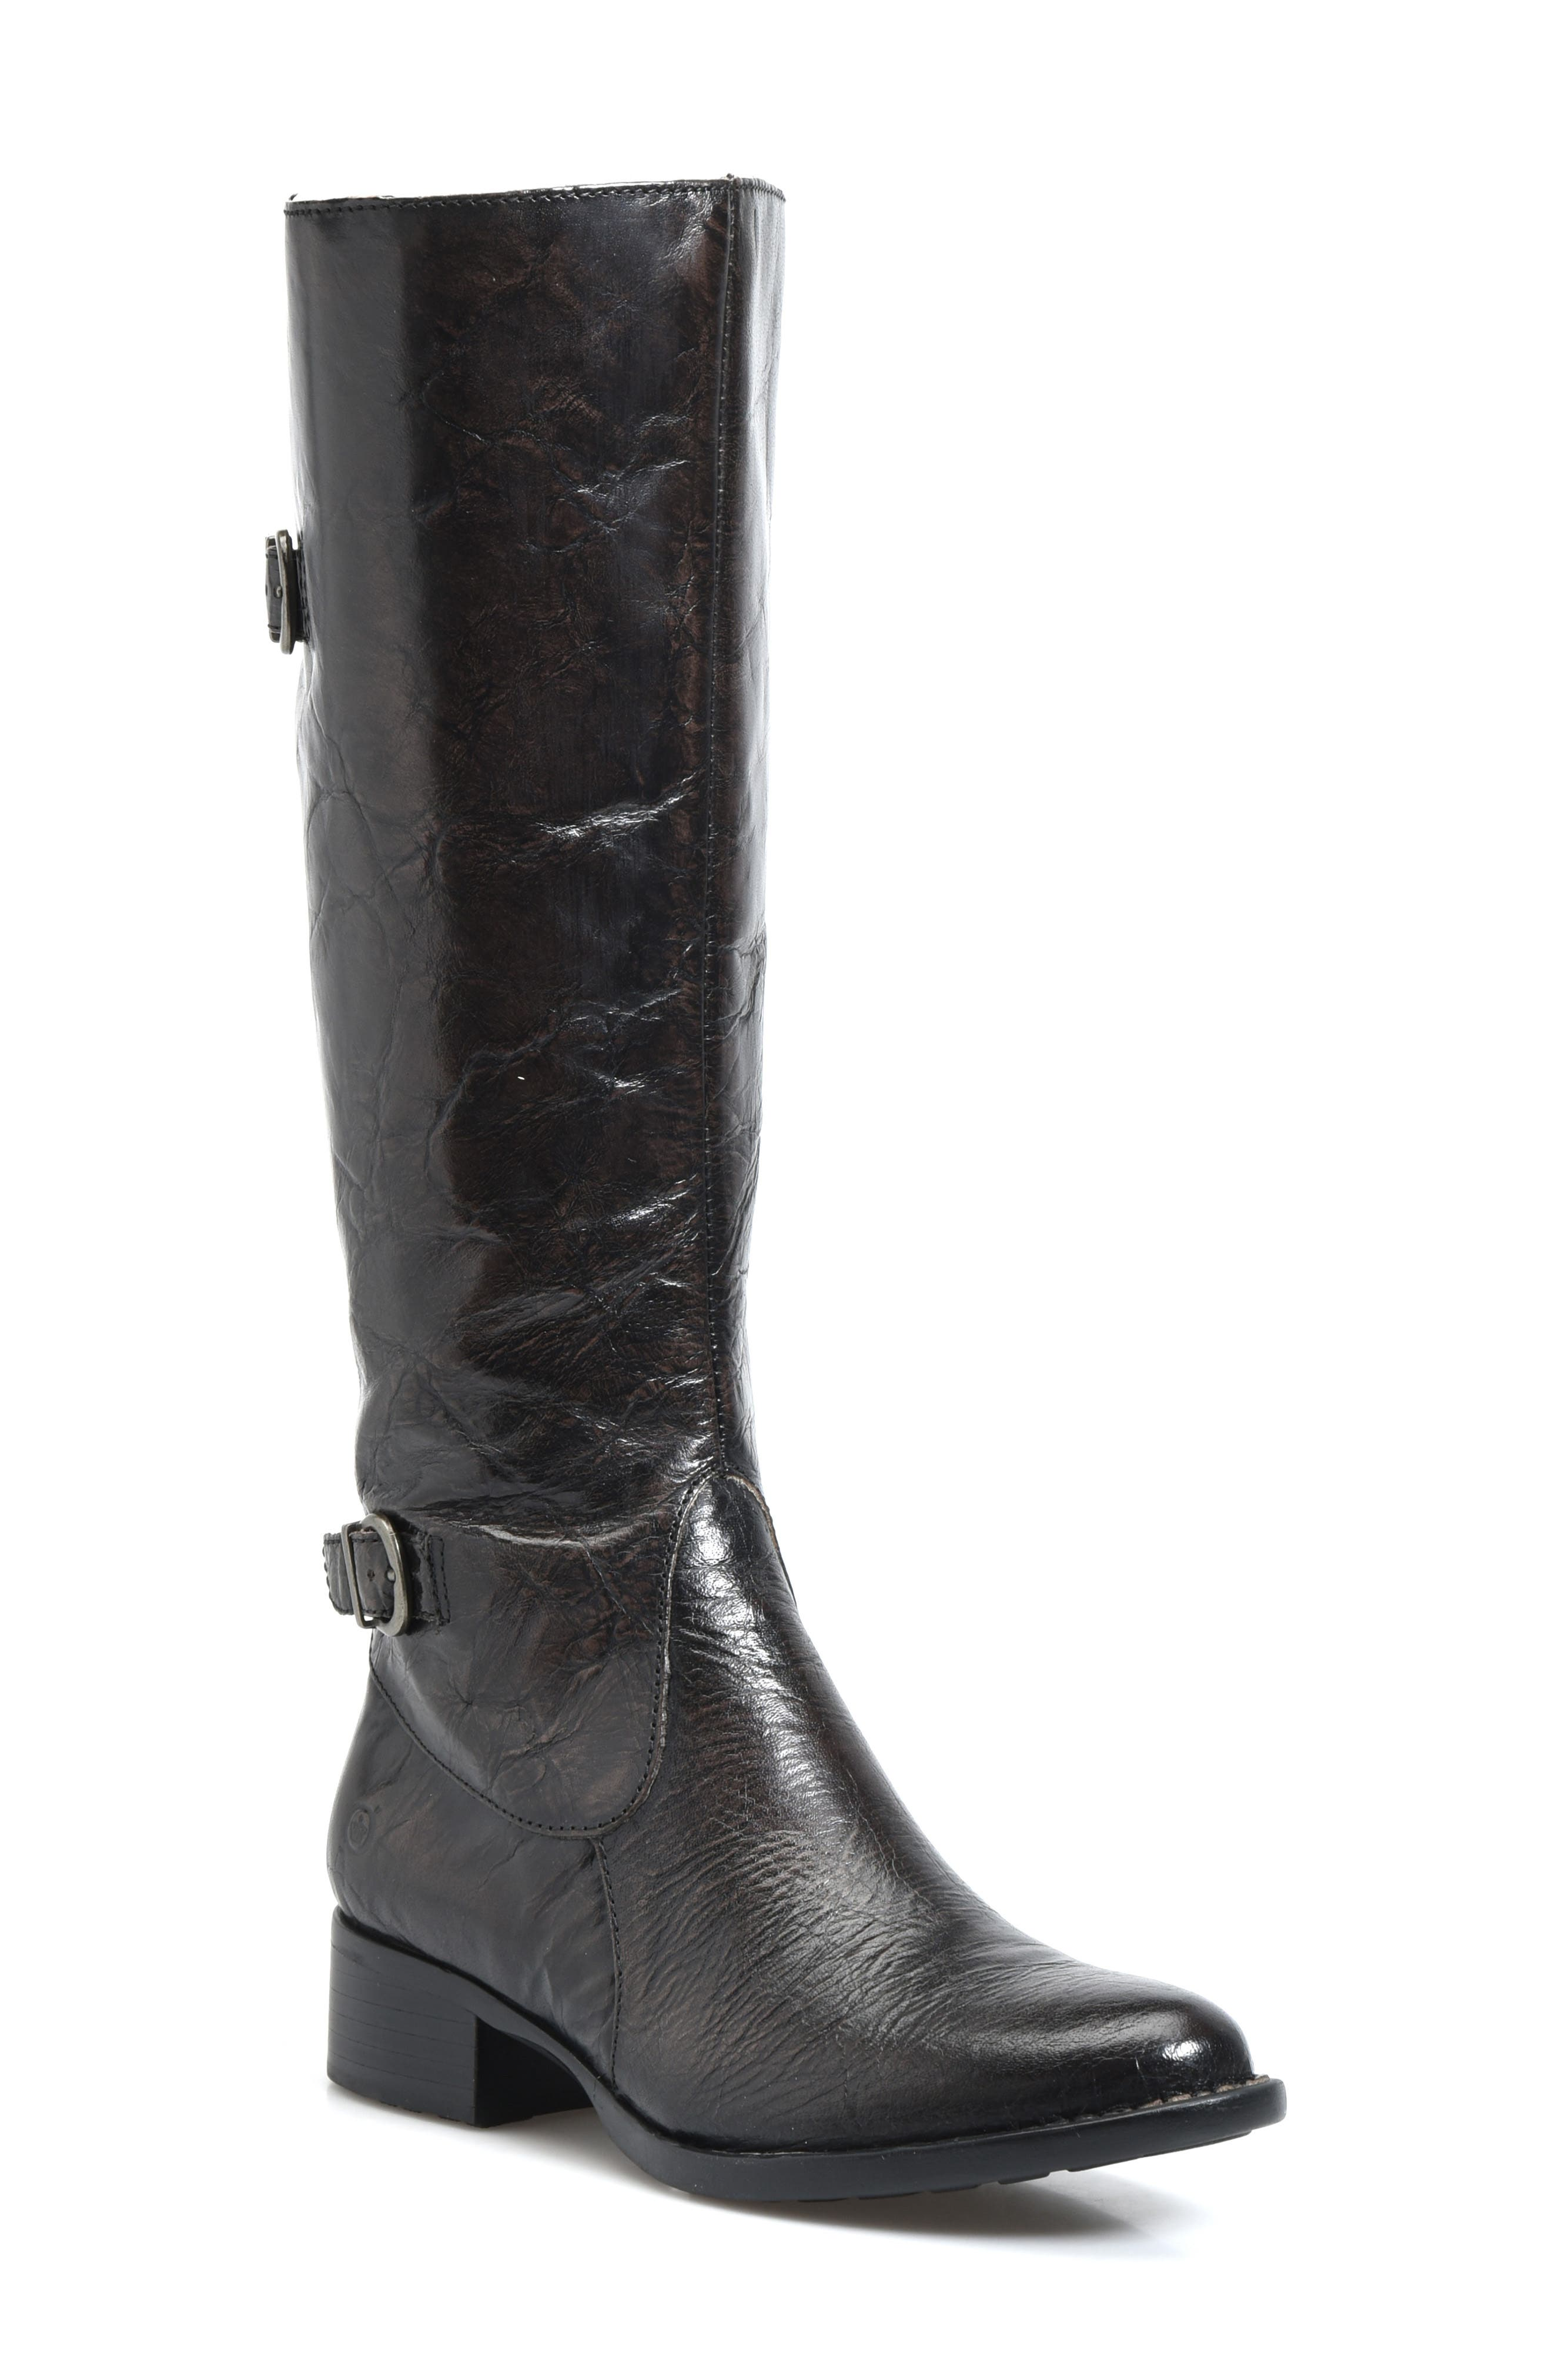 B?rn Gibb Knee High Riding Boot, Wide Calf- Grey